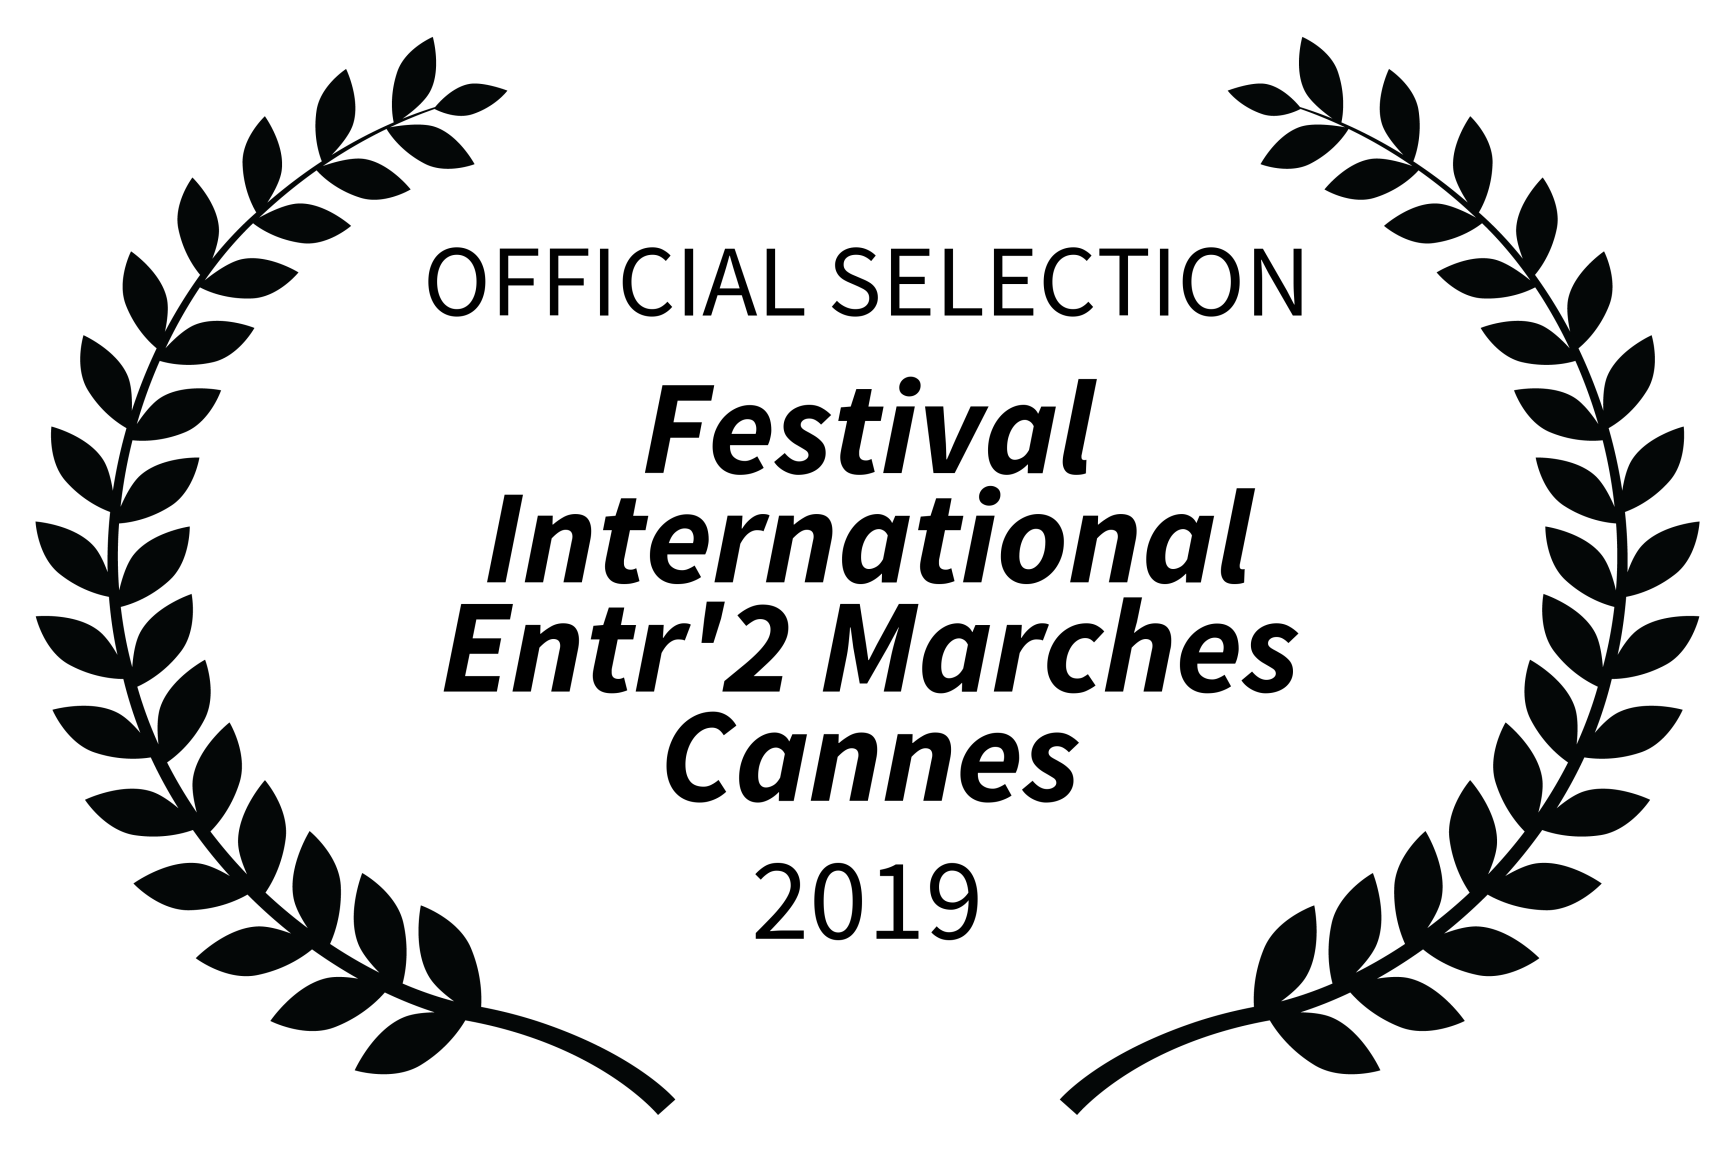 OFFICIAL SELECTION - Festival International Entr2 Marches Cannes - 2019